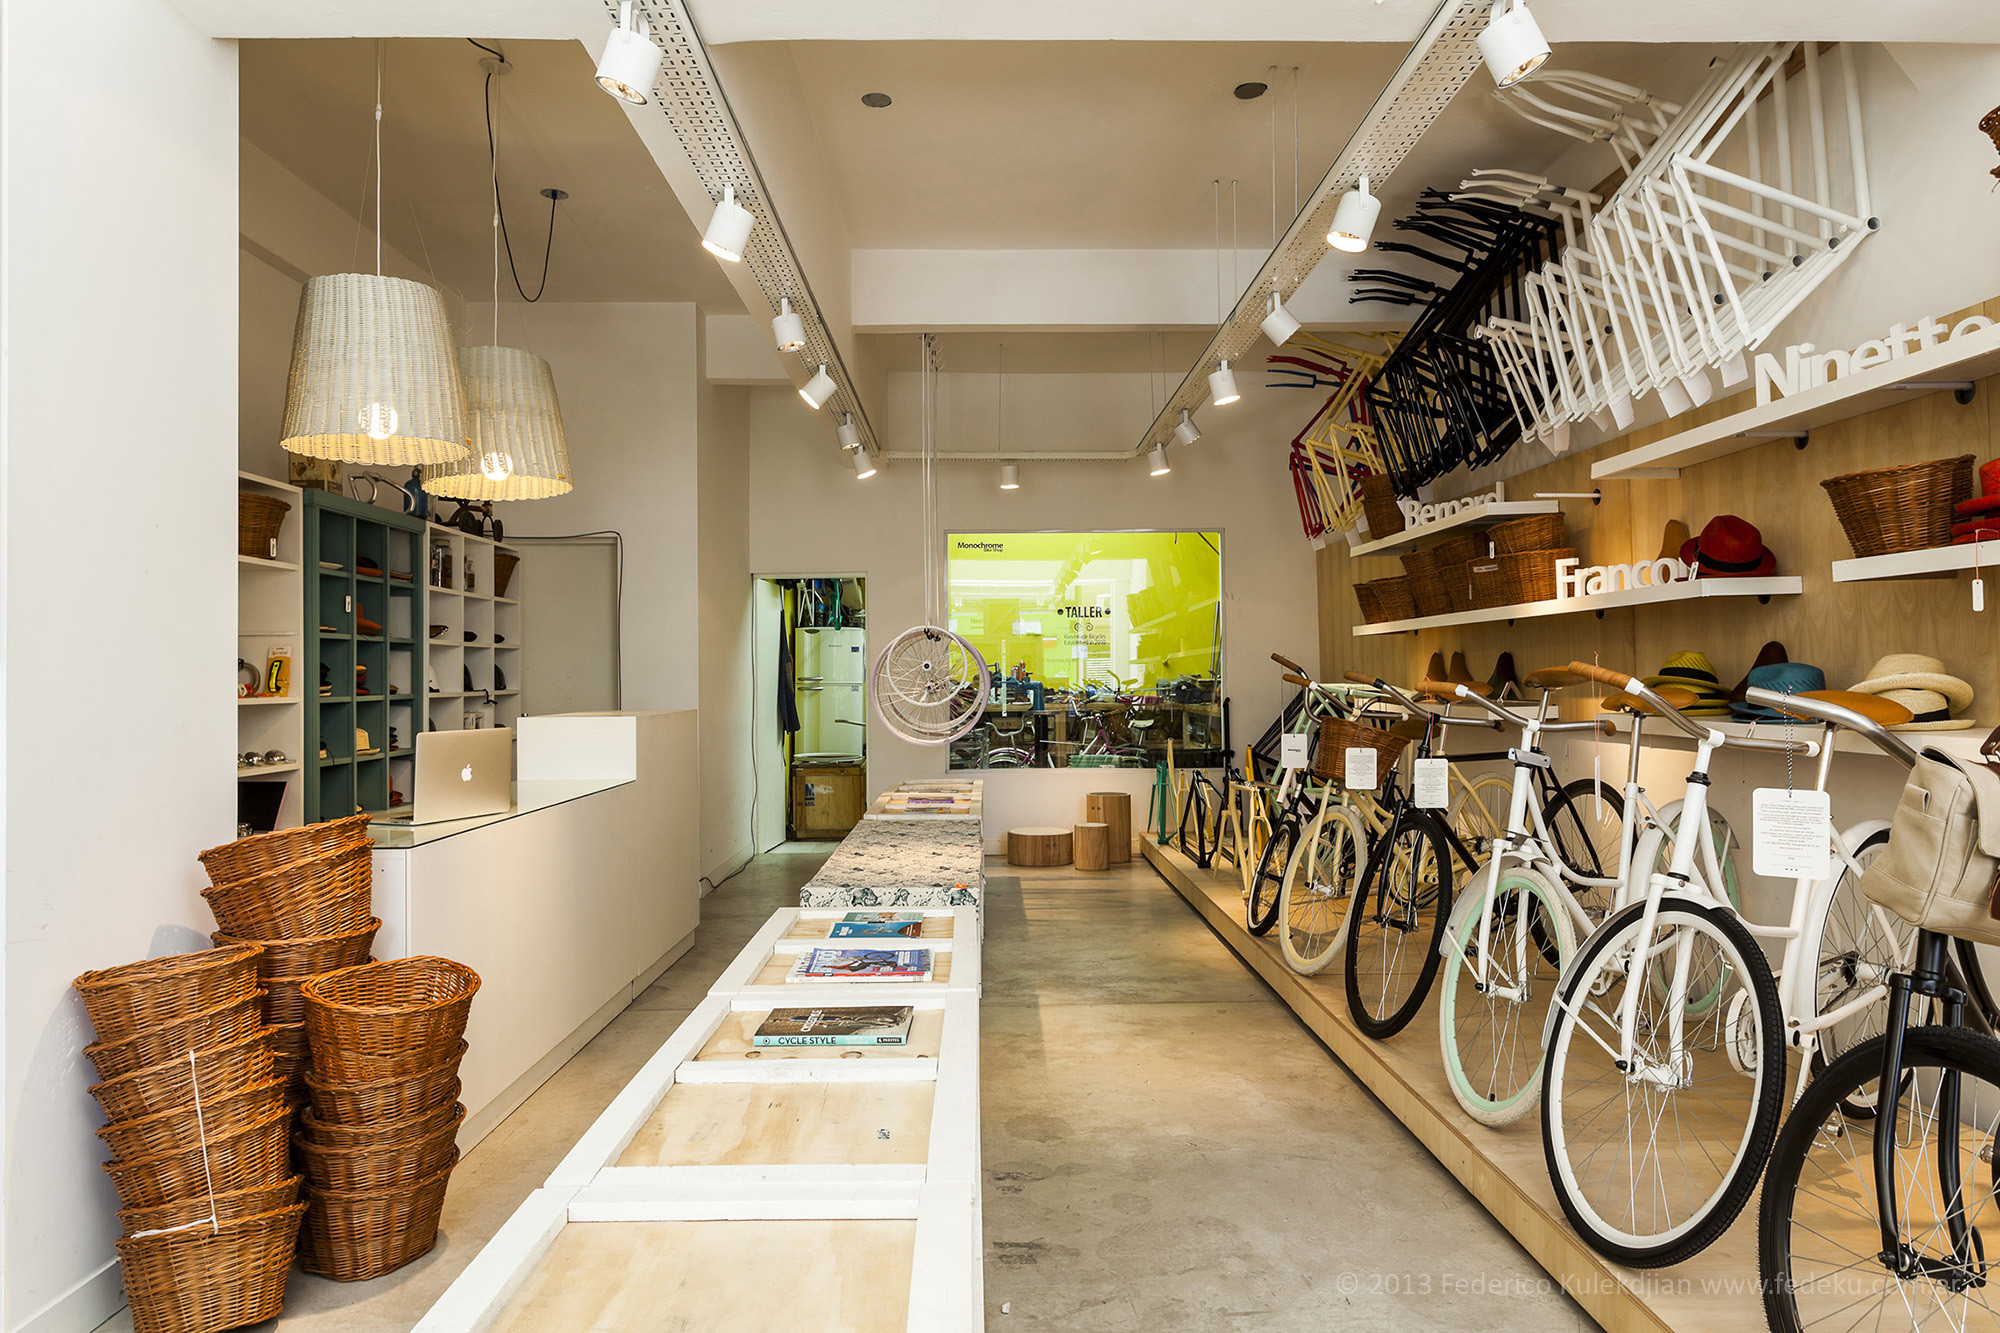 Archivo Arquitectura Para Bicicletas Archdaily Colombia